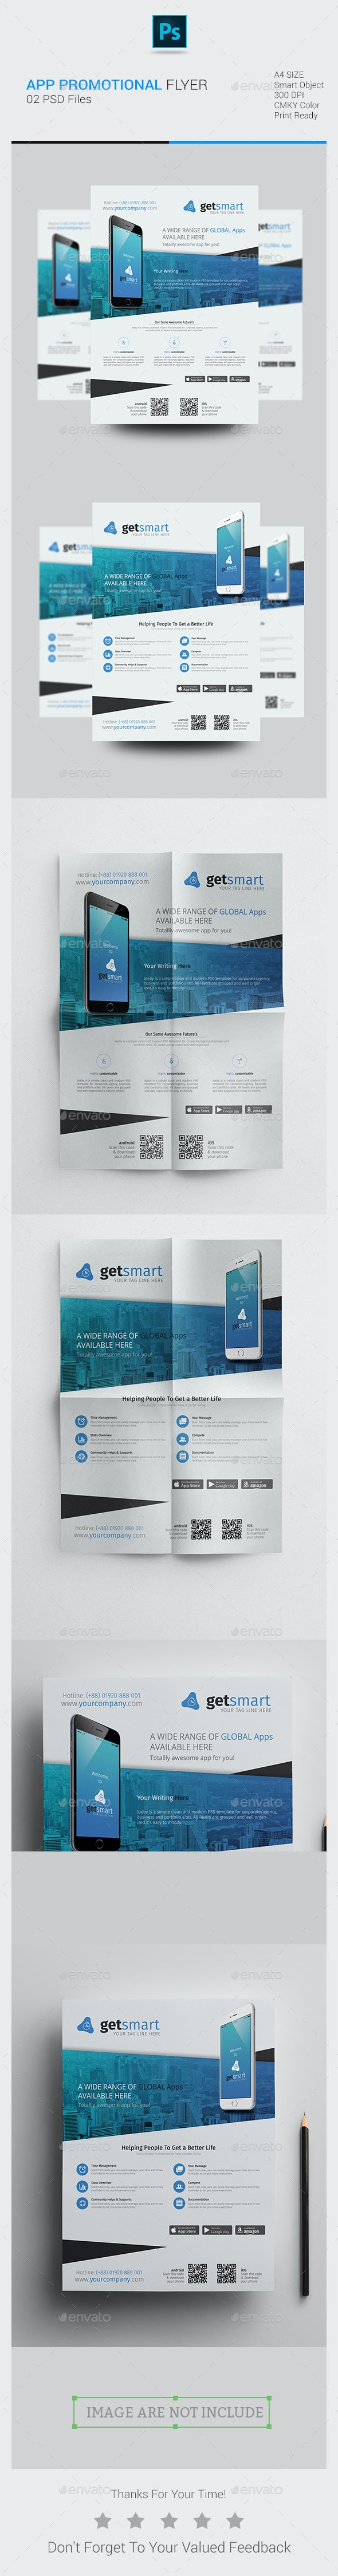 Mobile App Promotional Flyer - Corporate Flyers